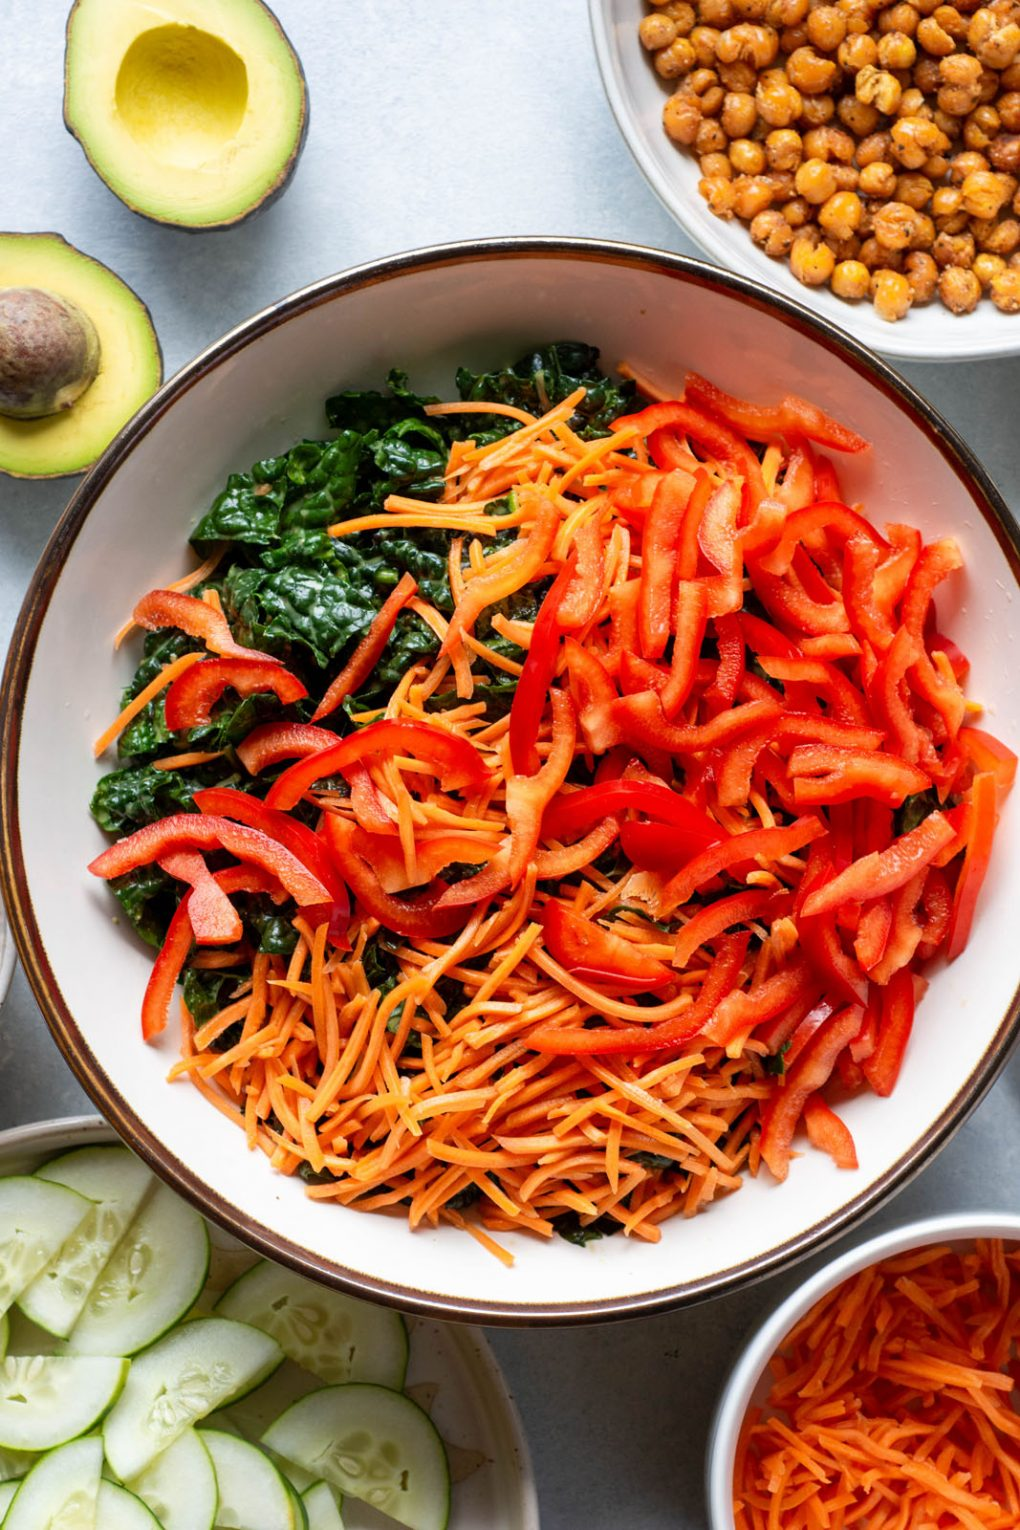 Overhead shot of a large white bowl filled with kale, shredded carrots, and thinly sliced red pepper on a light background